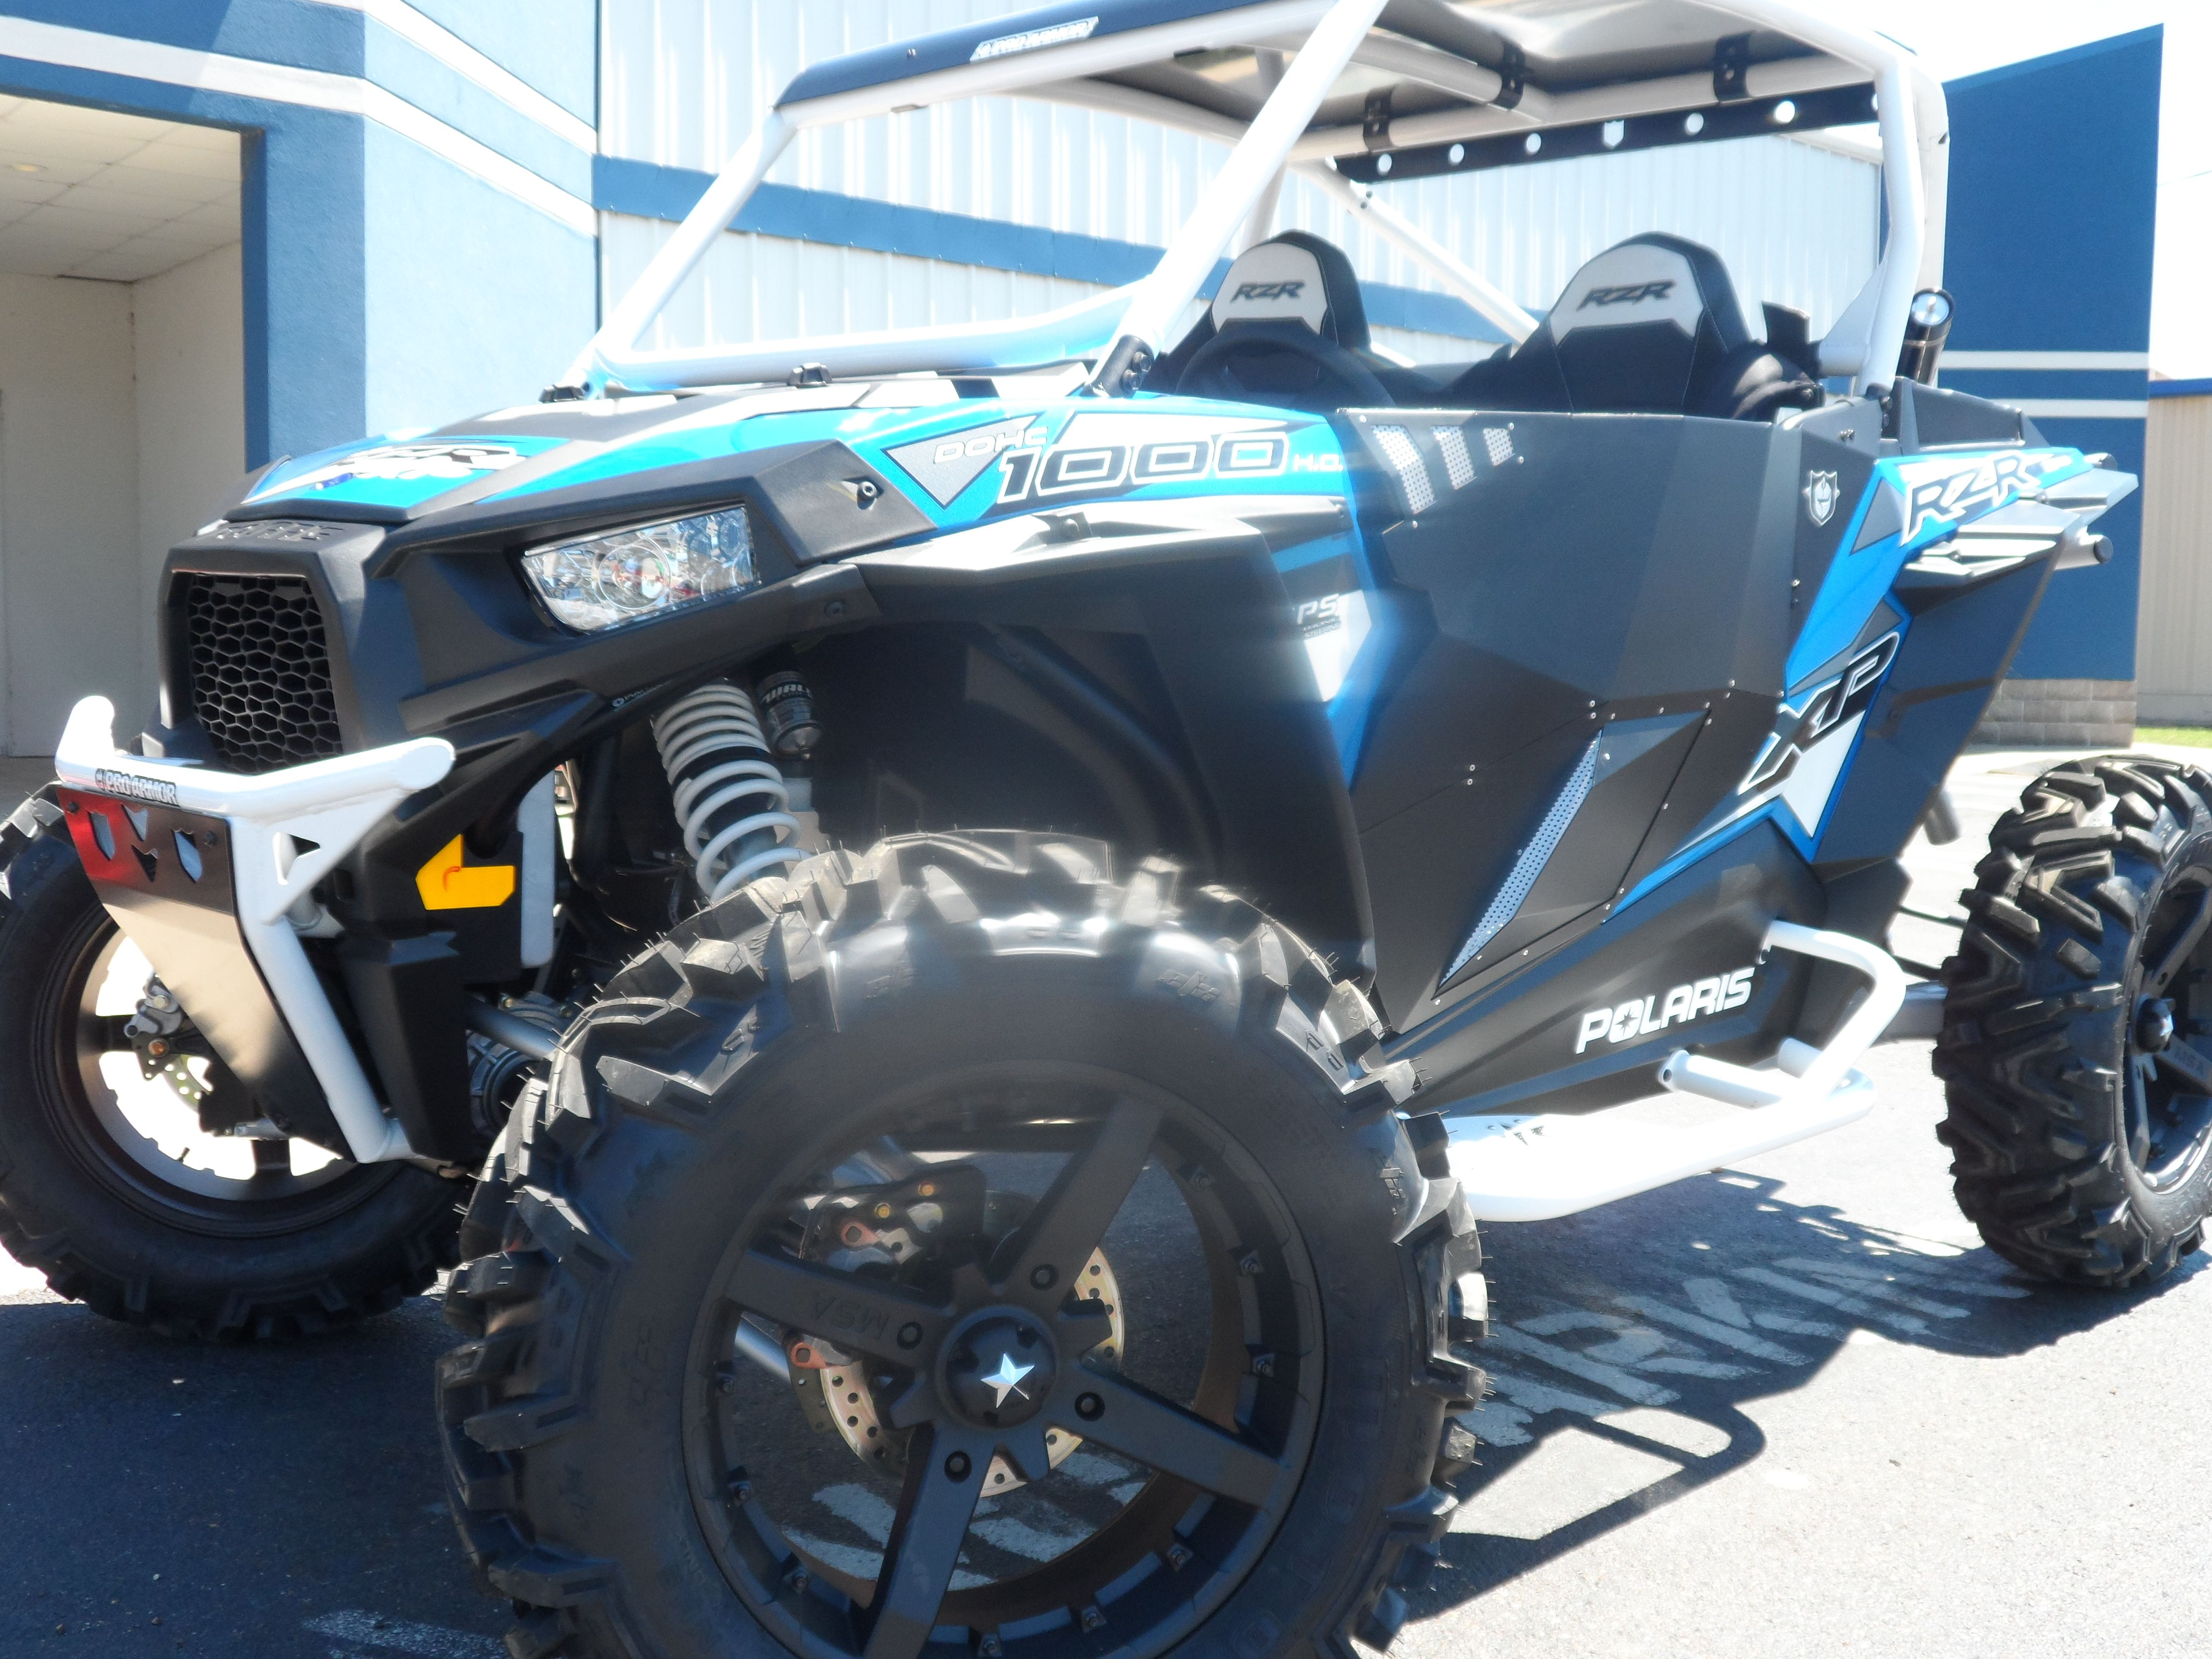 16 Rzr 1k Sittin On 18z W 32z Proarmor White Bumper Chopped Cage Rear Bumper Top Doors And White Rogue Sliders Call To Monster Trucks Rzr Custom Build